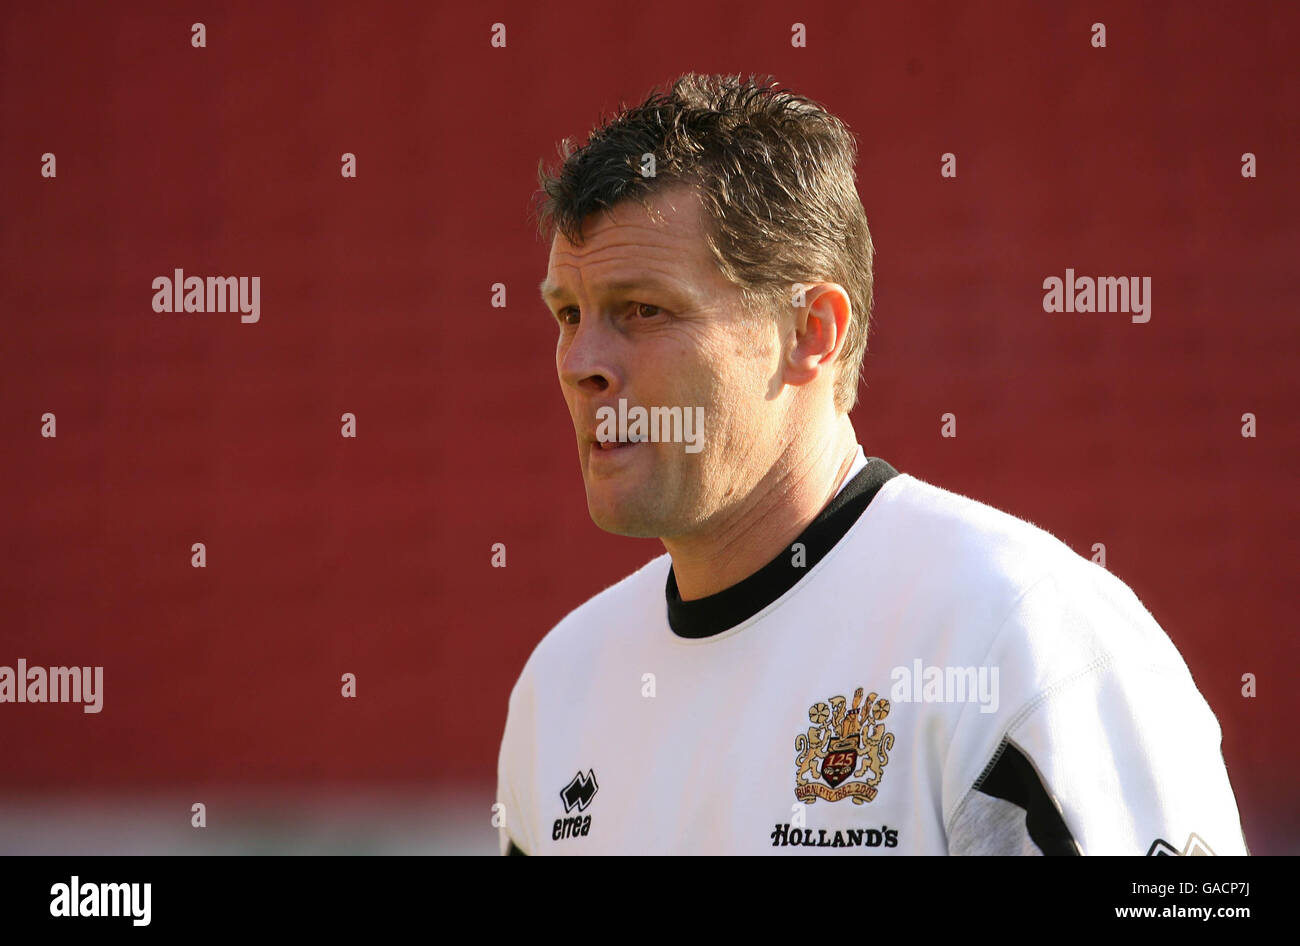 Steve Cotterill Manager Of Burnley Football Club Stock